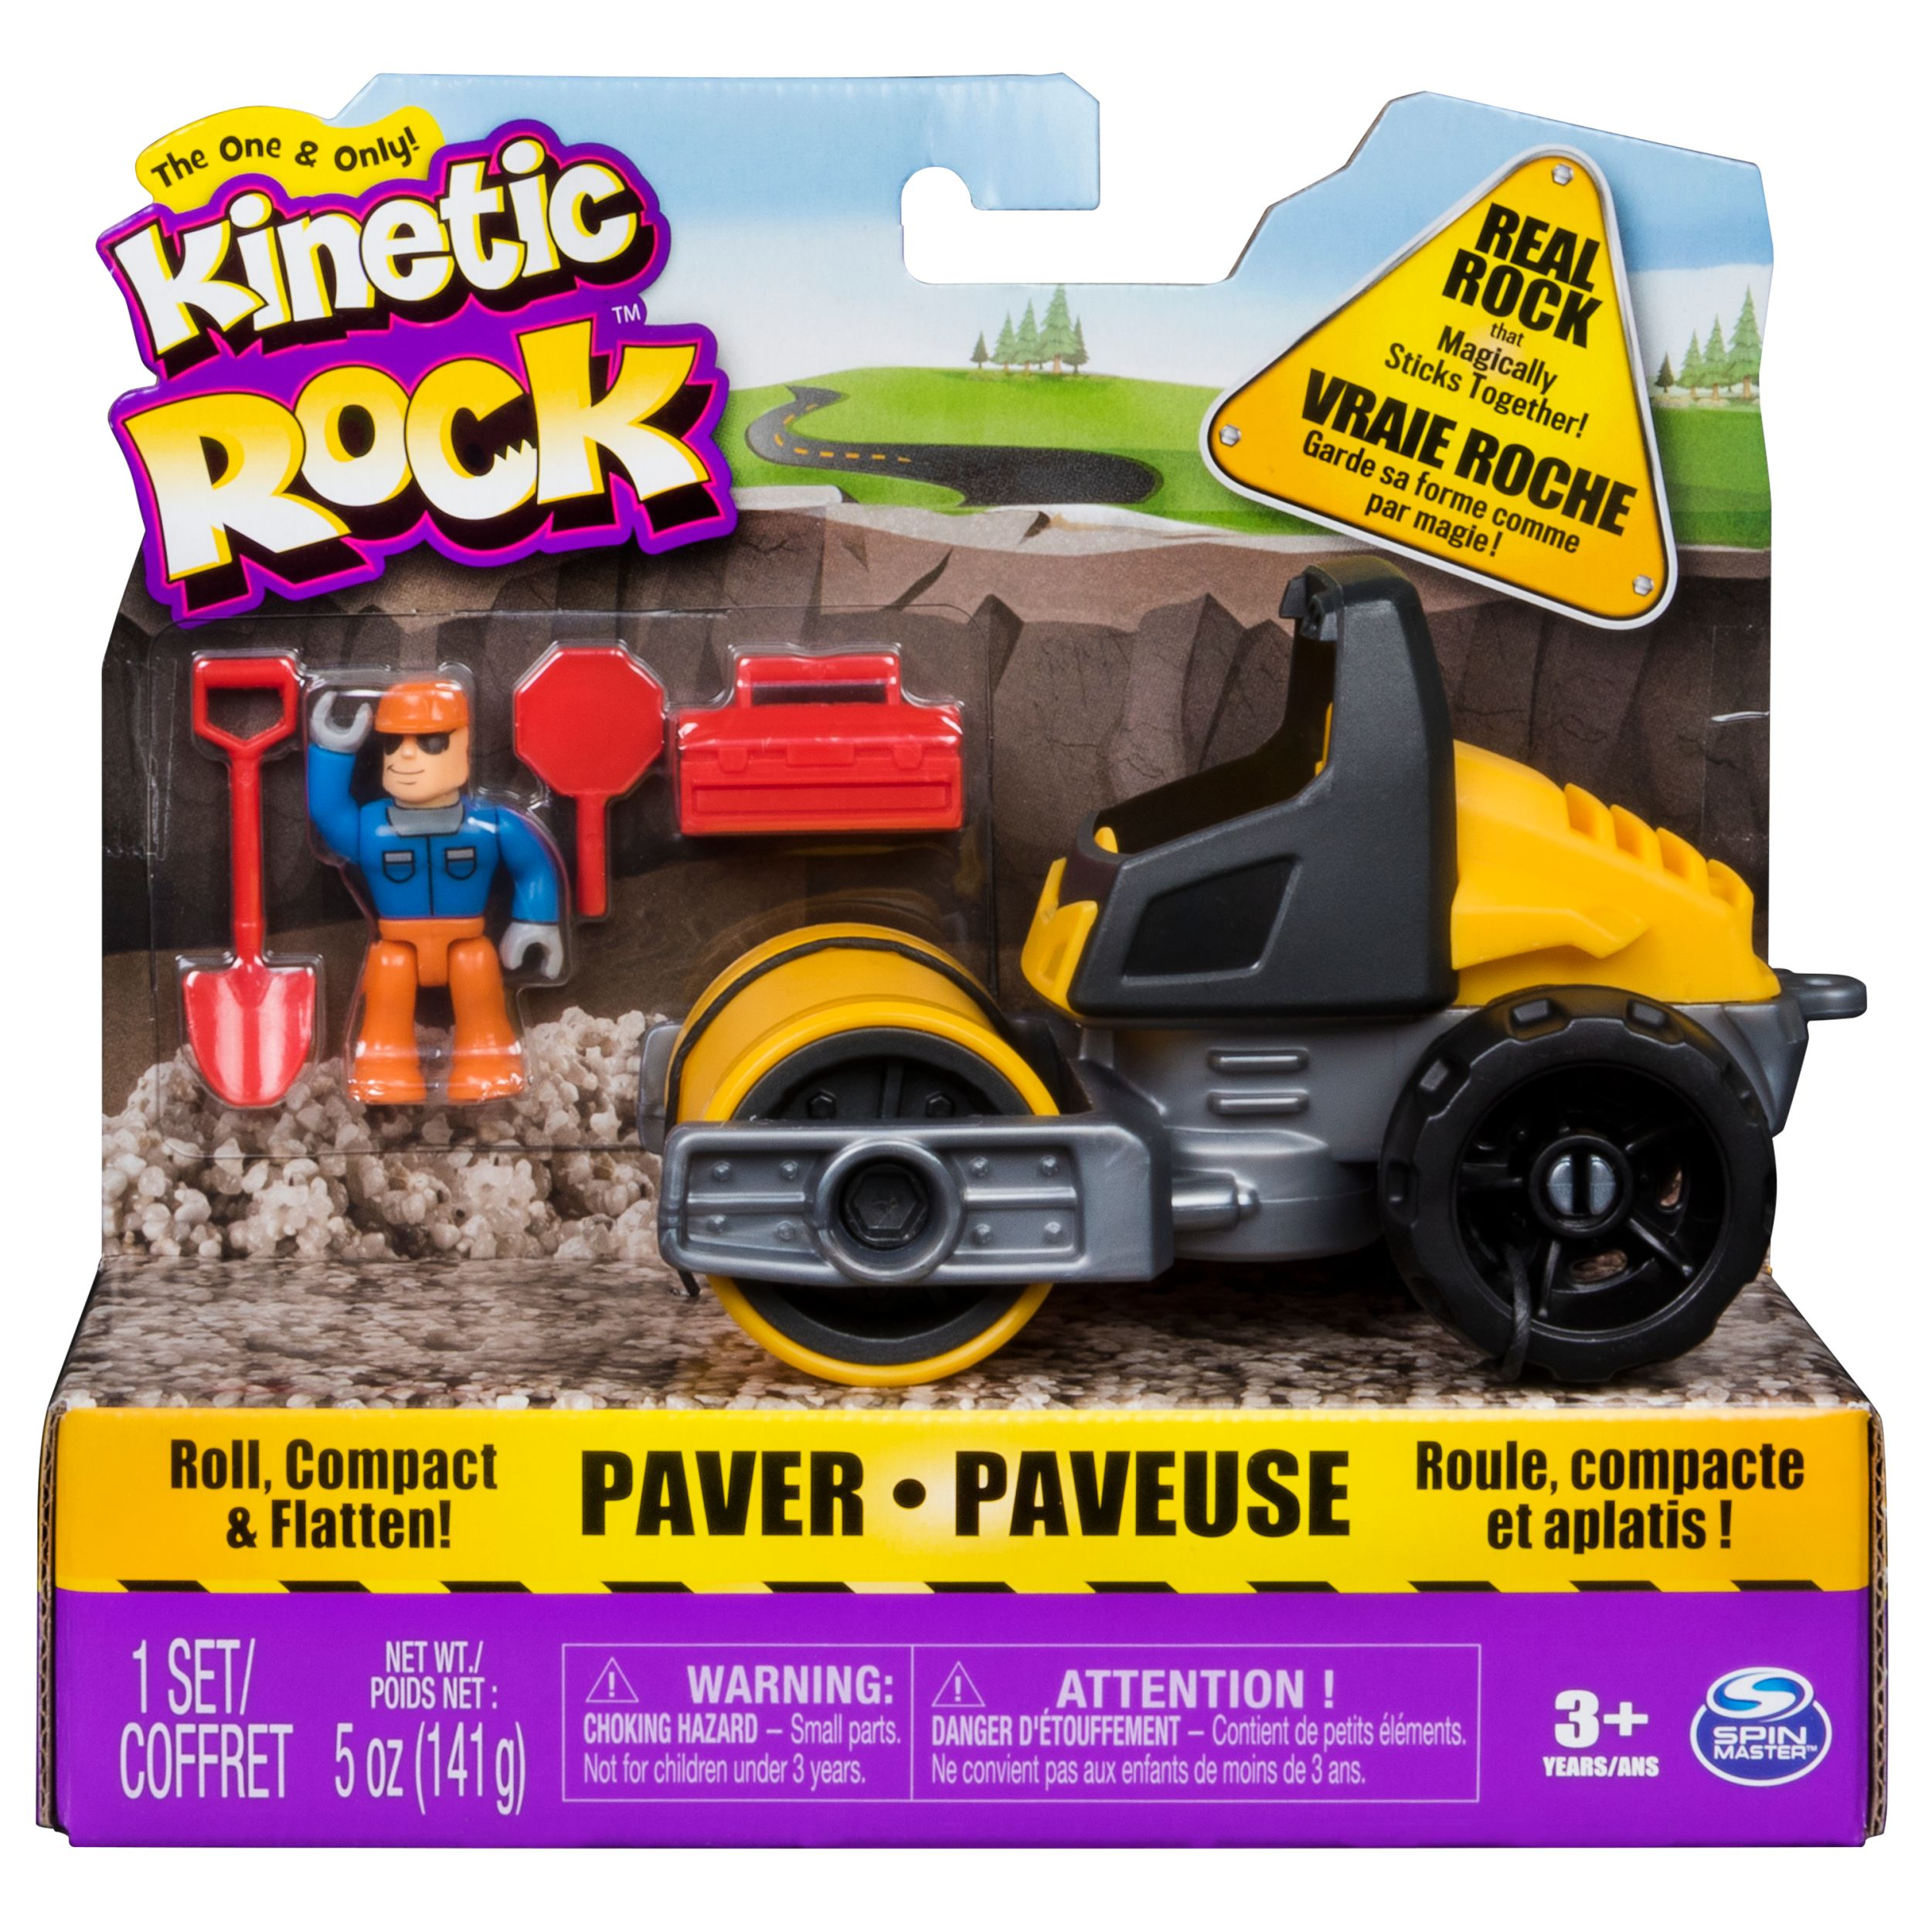 Kinetic Rock - Vehicle Paver Toy Kit with 5oz of Kinetic Rock, for Ages 3 and Up